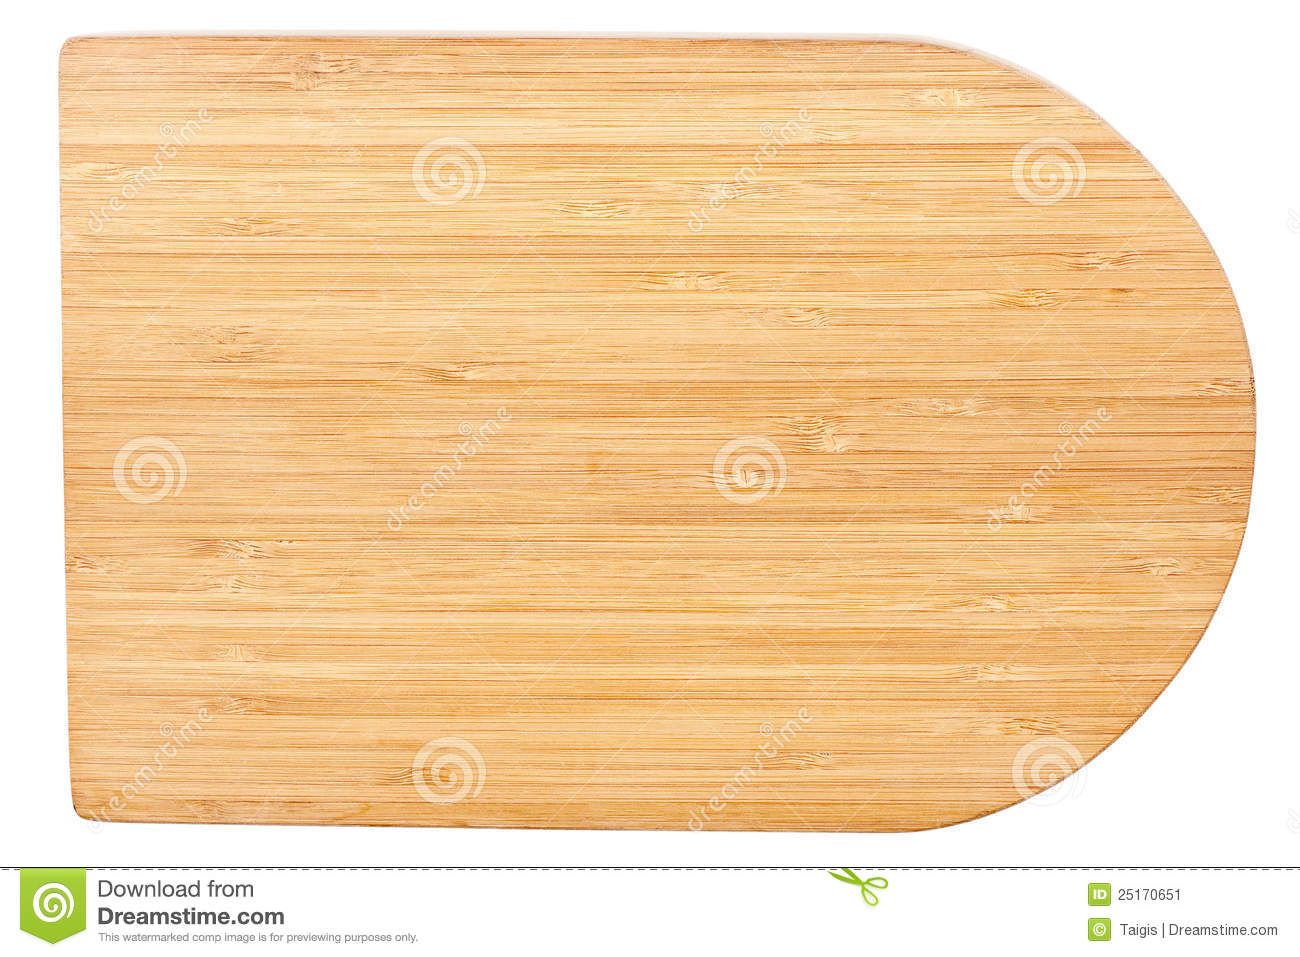 Chopping Board Stock Image - Image: 25170651